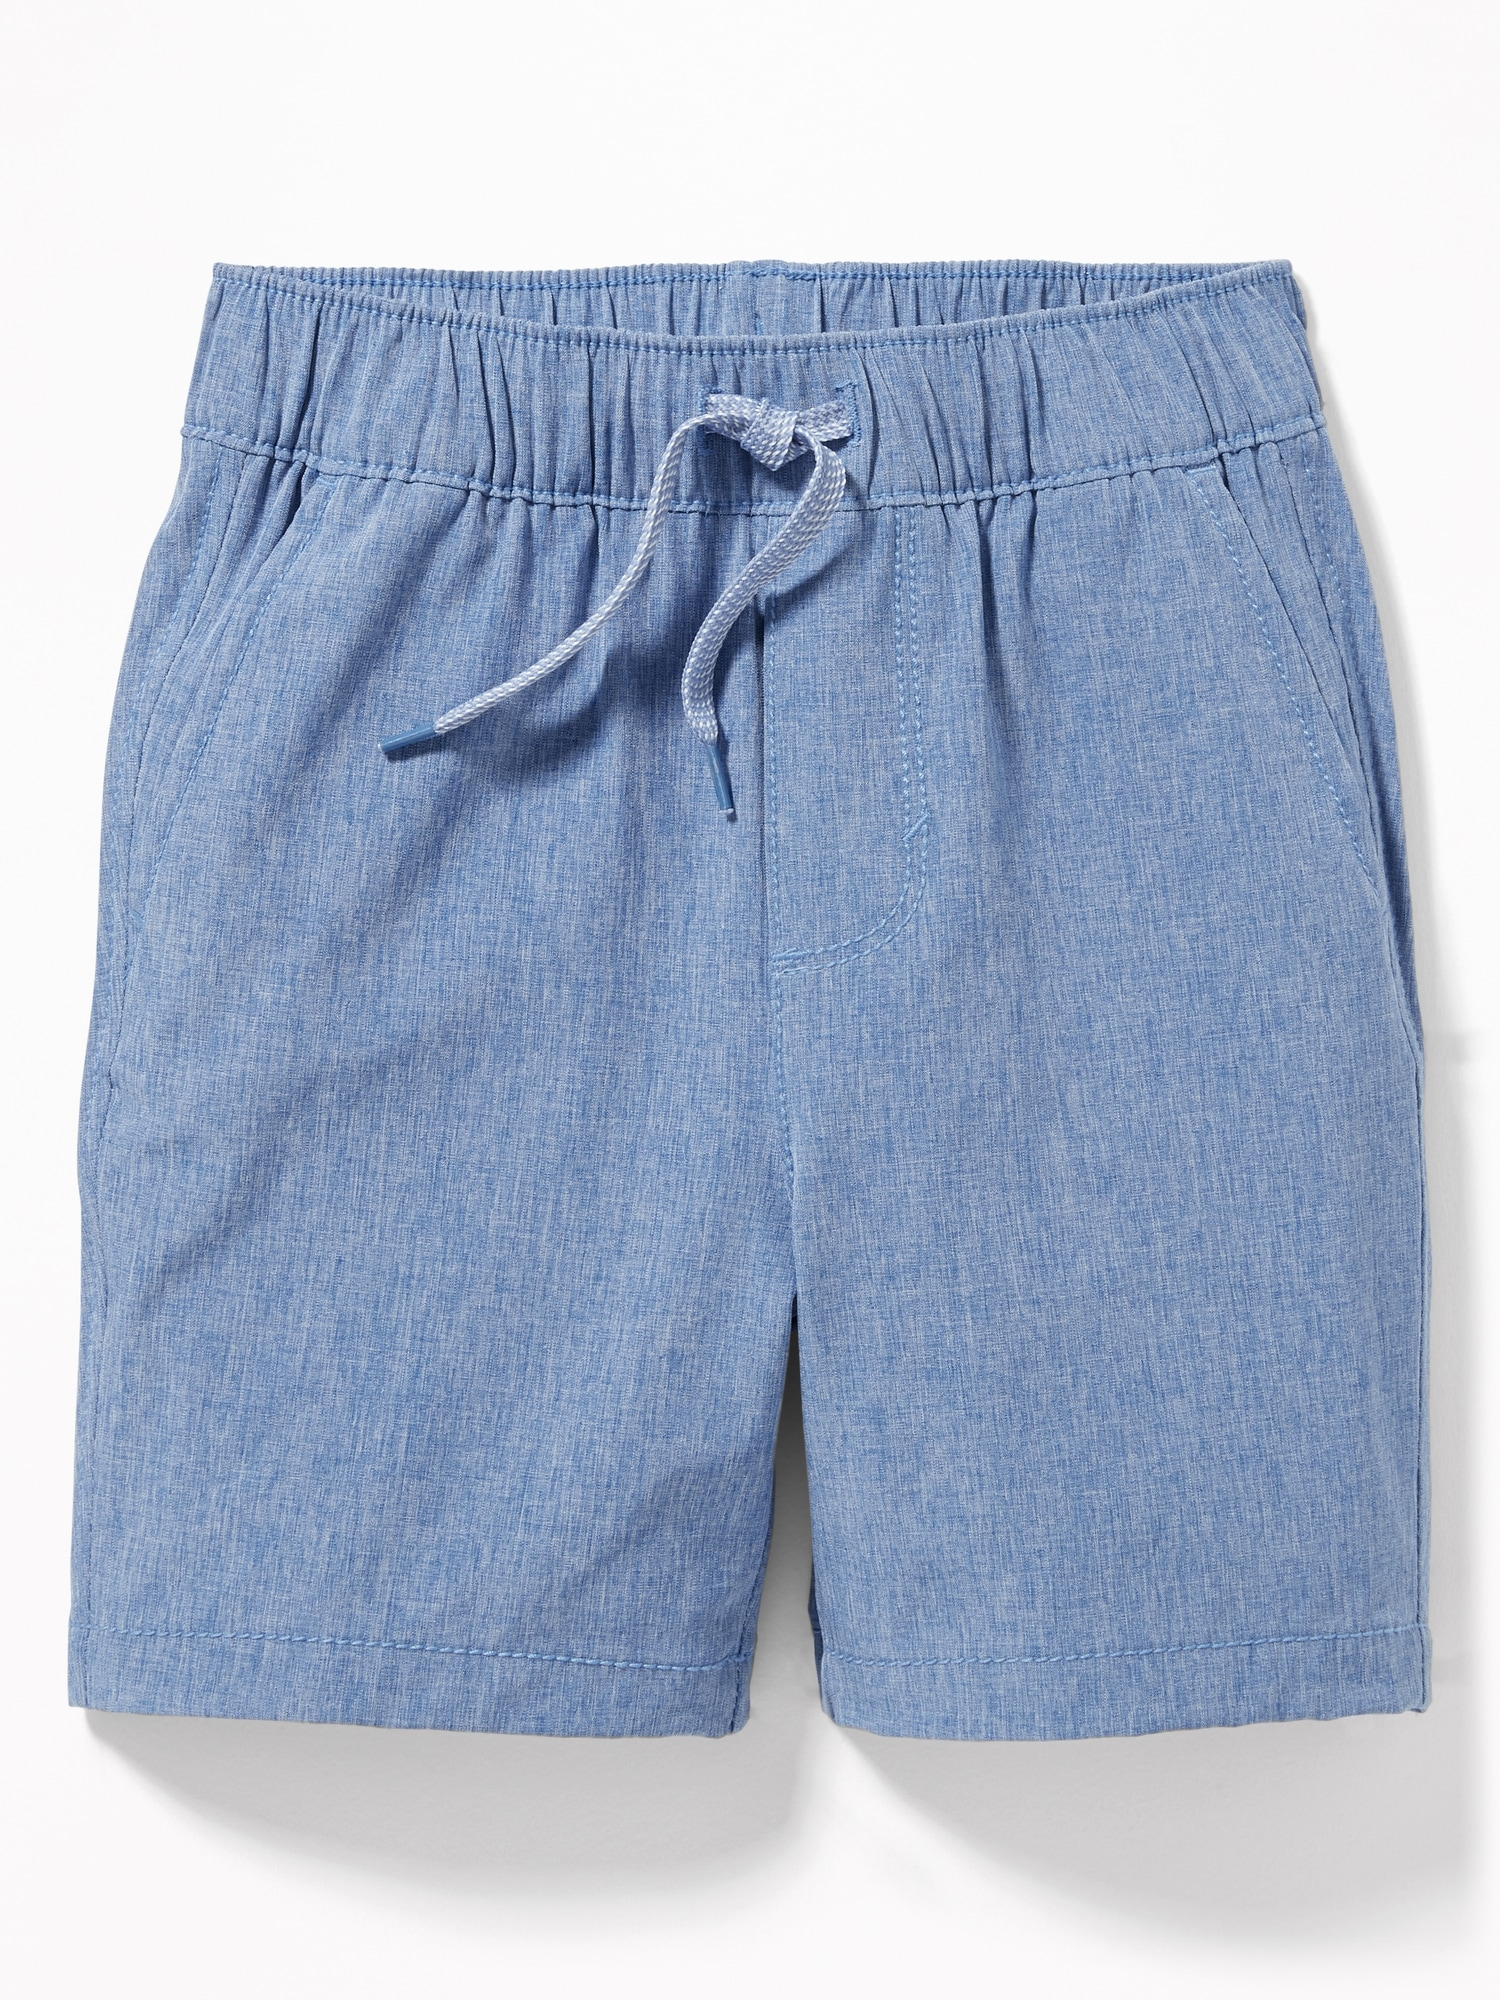 0da6965c0fd Dry Quick Functional Drawstring Shorts for Toddler Boys